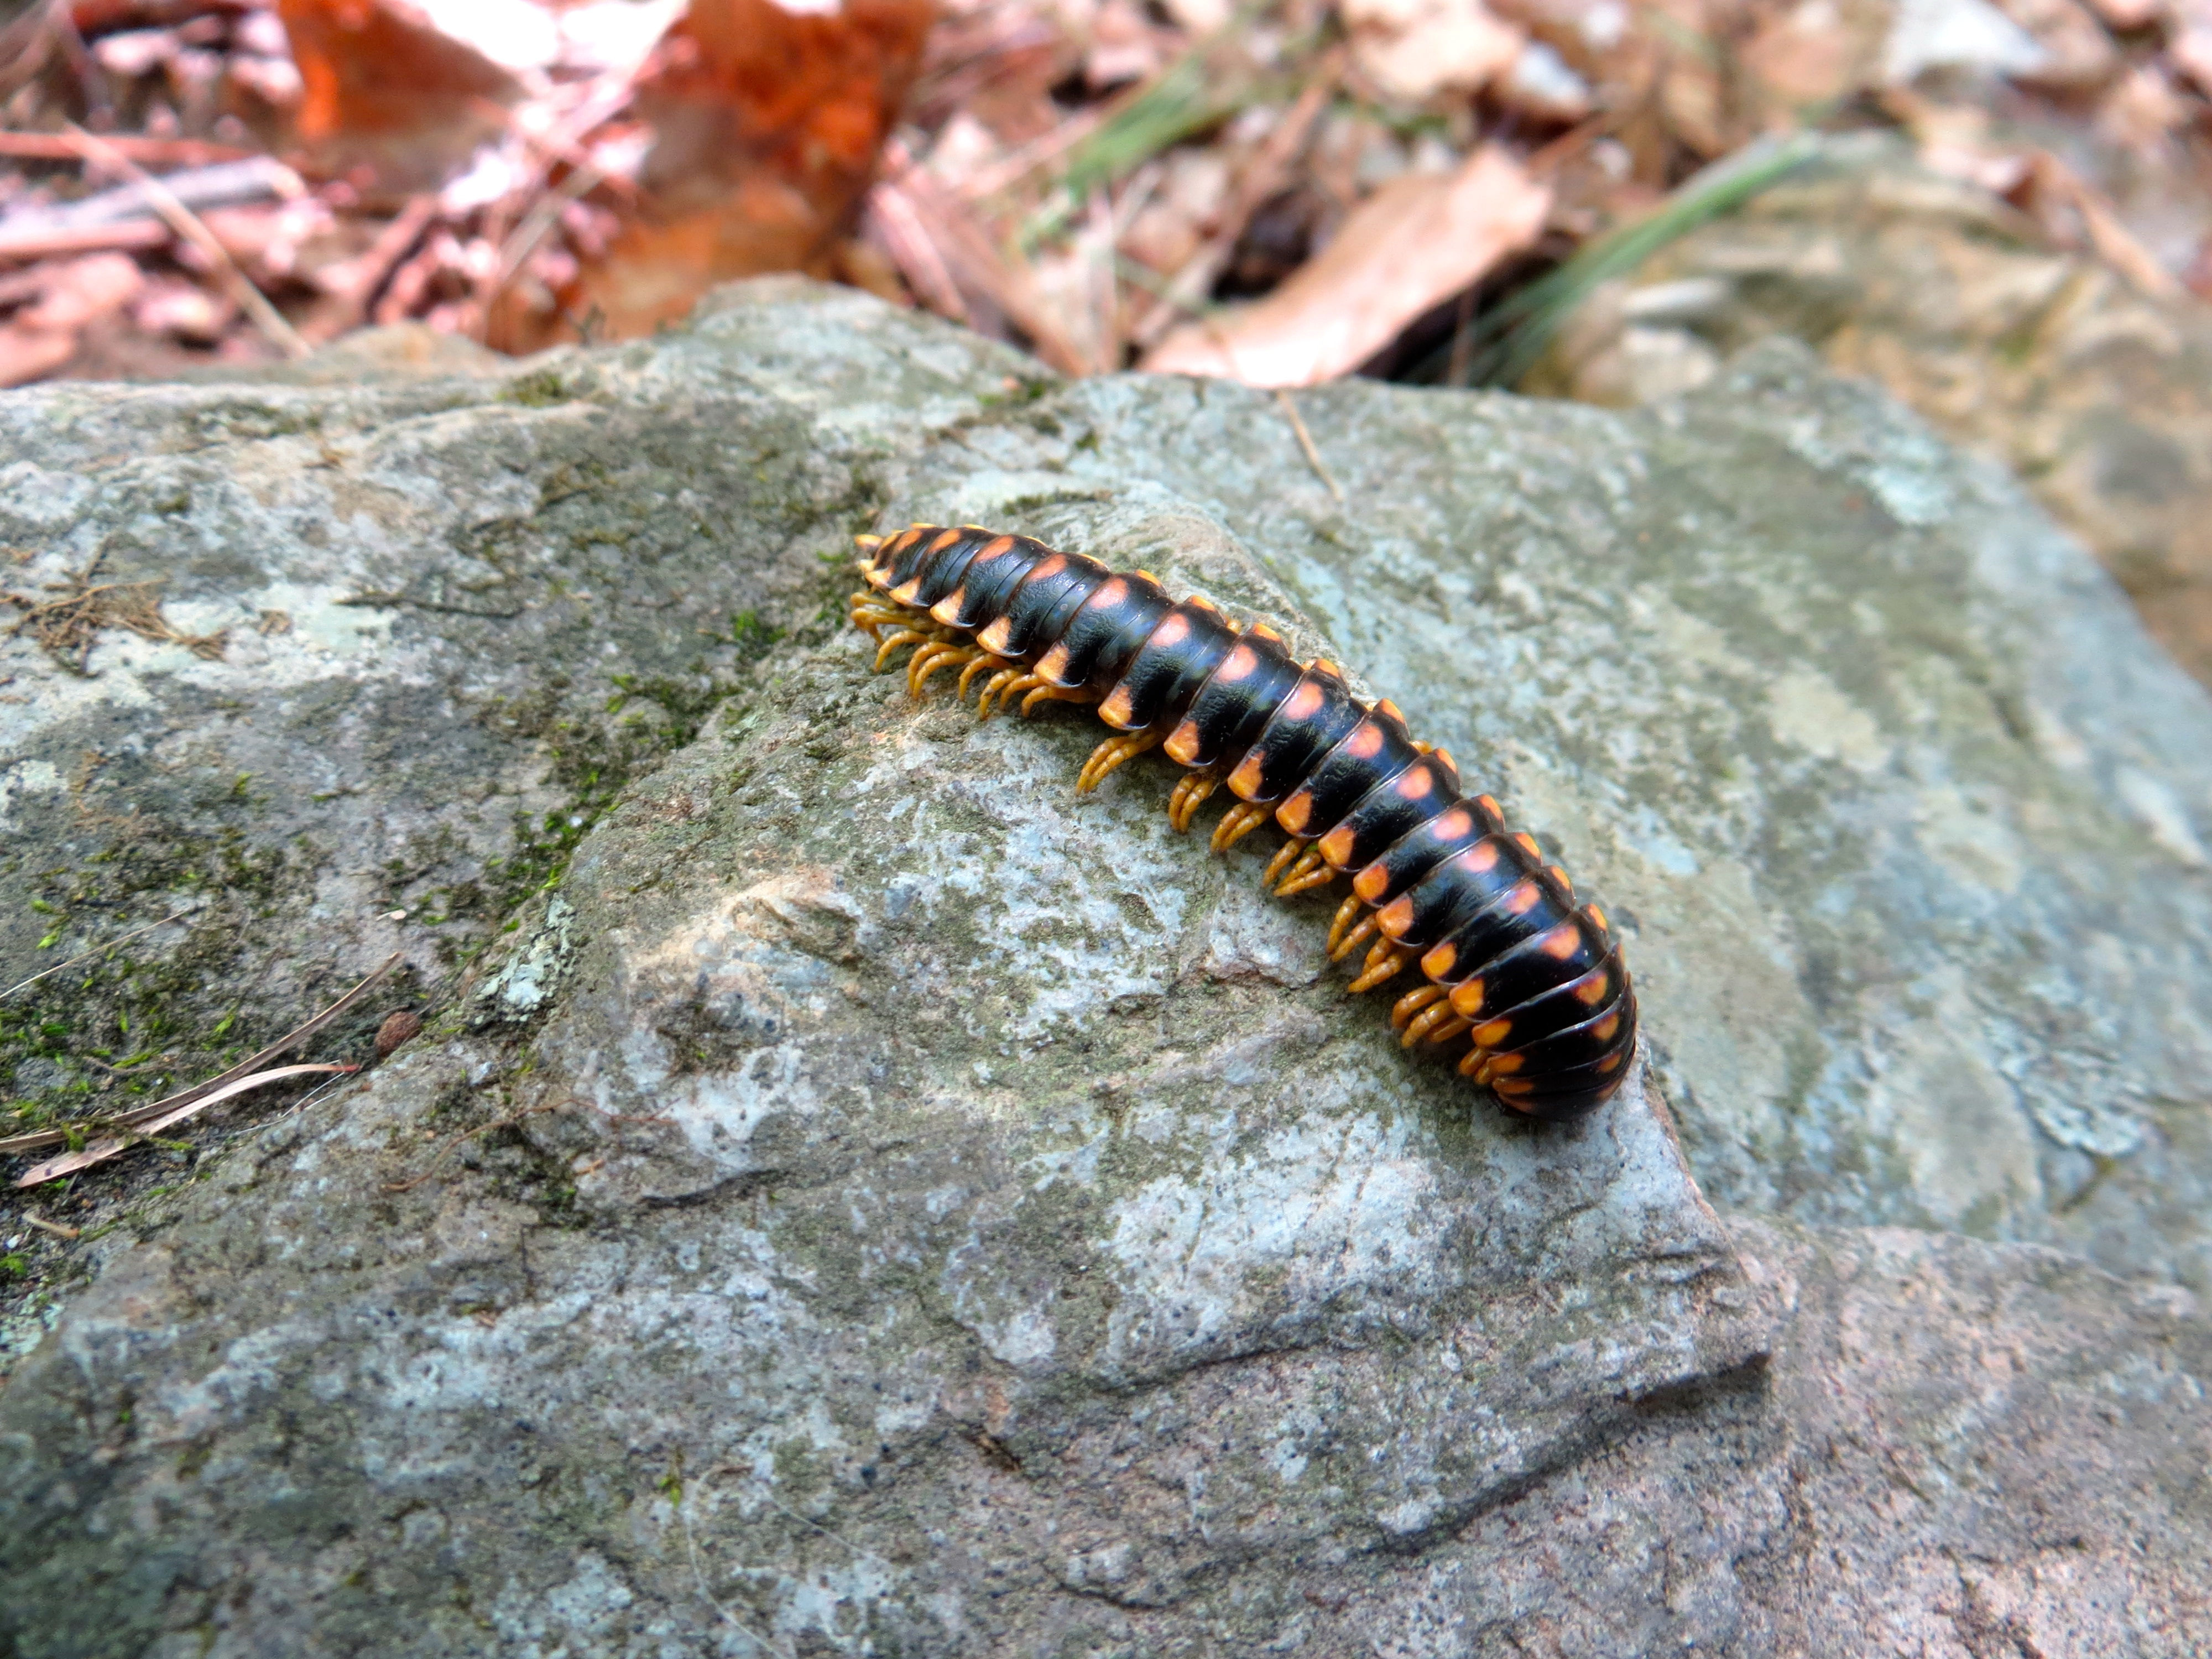 Millipedes were everywhere today